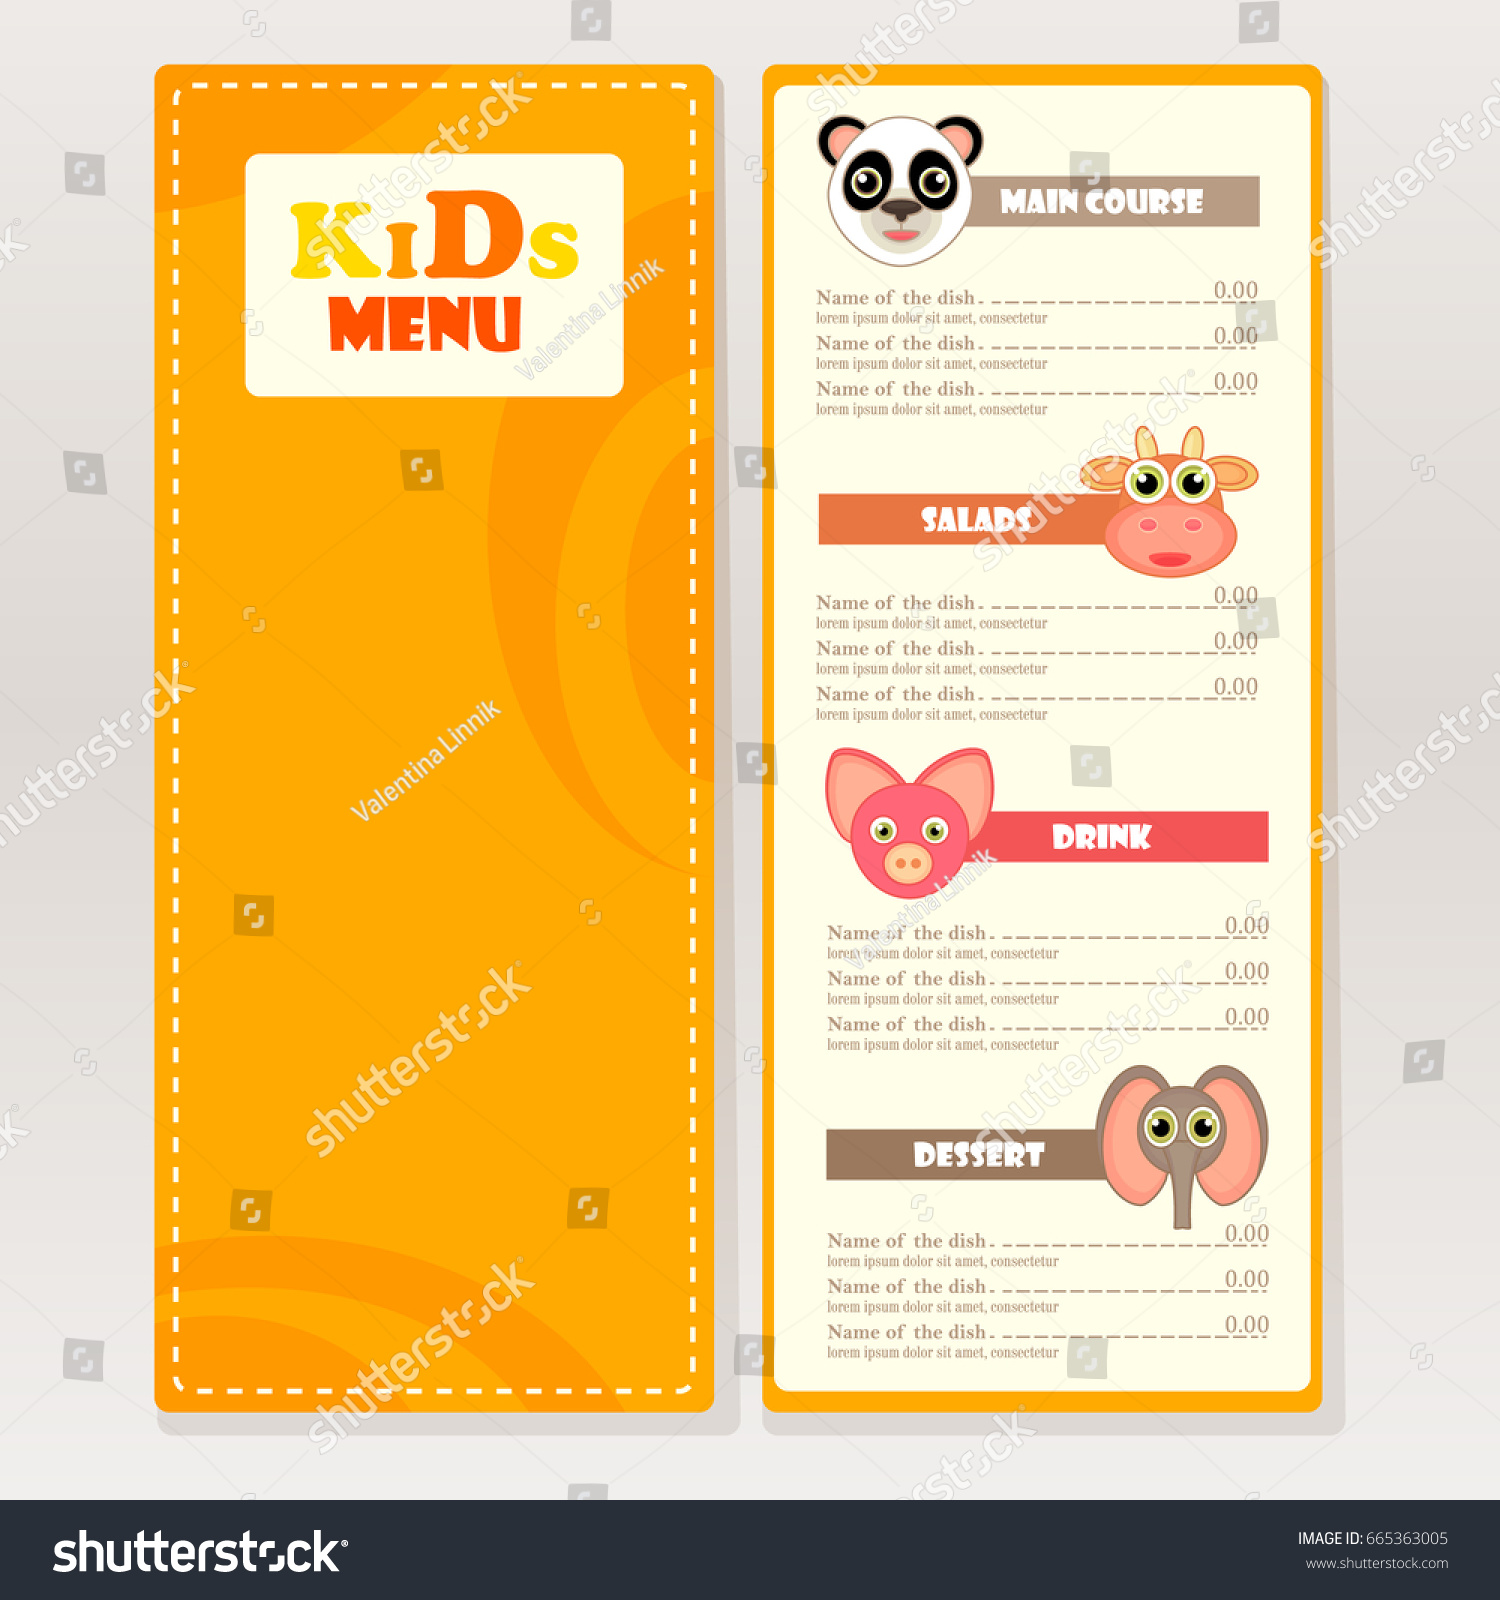 Awesome Design Sample Kids Menu For Cafes, Restaurants. Bright Graphic Objects,  Animal Silhouette,